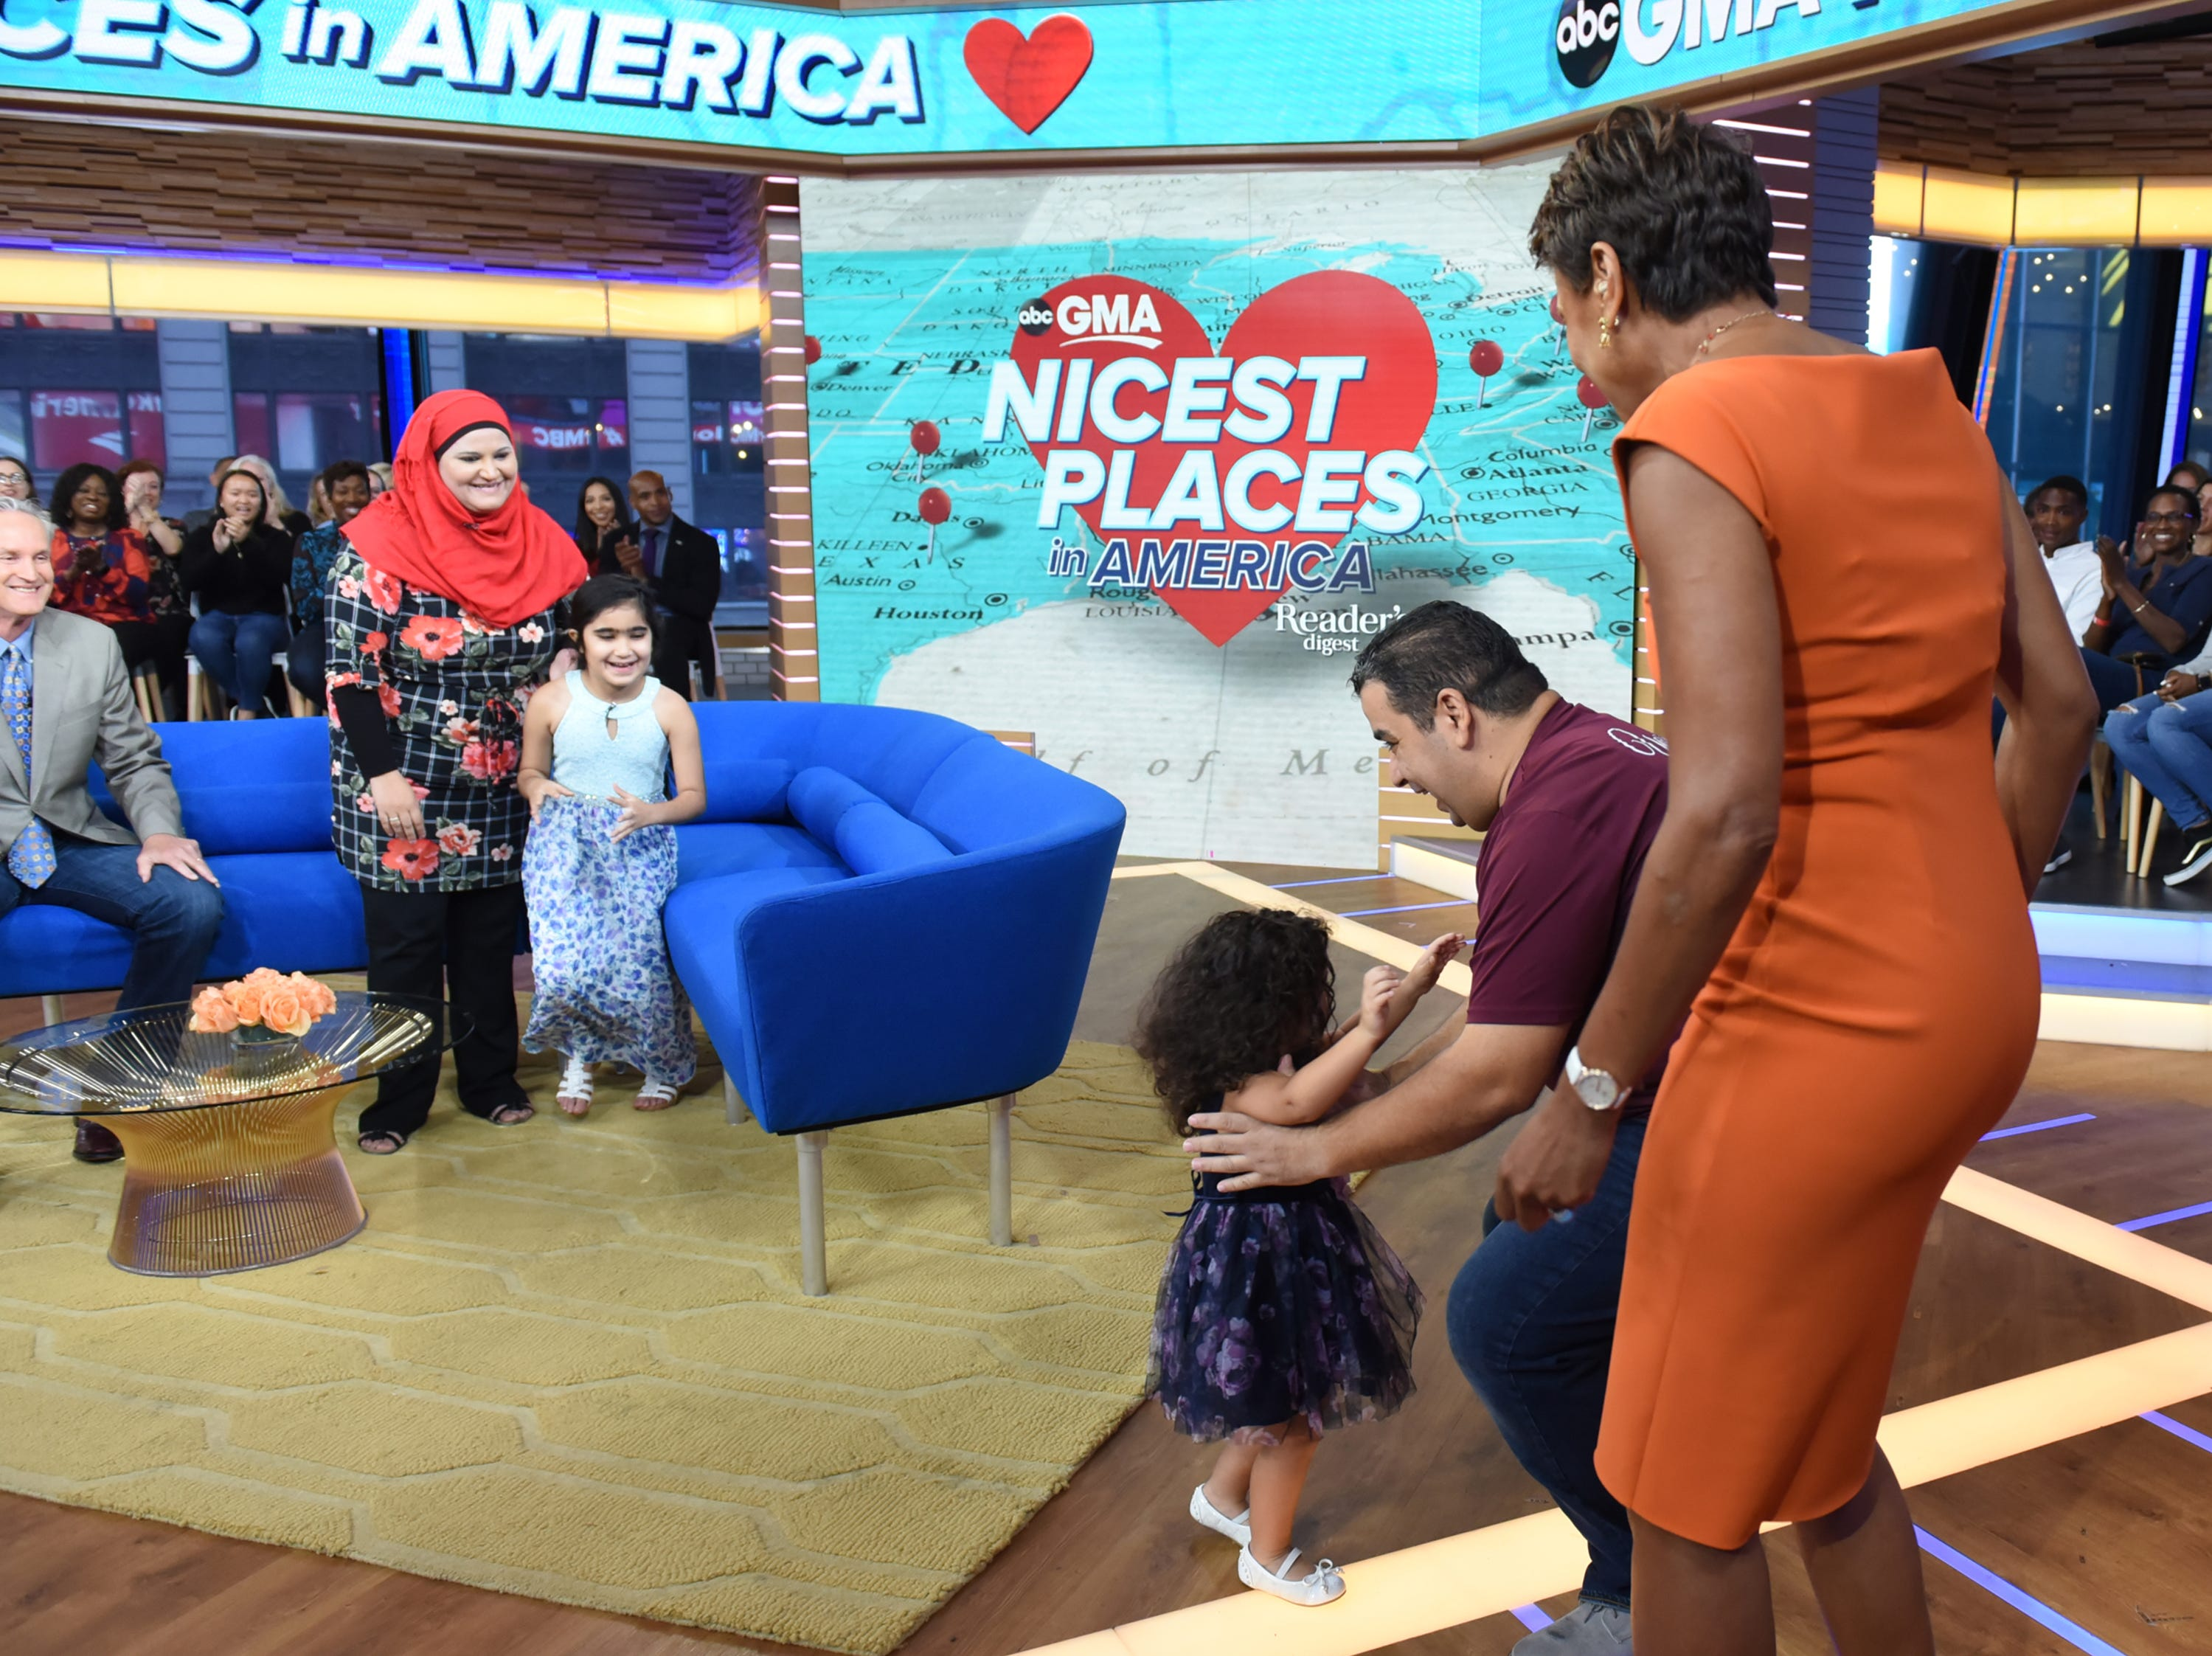 """Yassin Terou, second from right, owns Yassin's Falafel House in Knoxville, Tenn., which was named the Nicest Place in America. Terou and his family were guests on """"Good Morning America,"""" on Thursday, October 11, 2018 on ABC."""